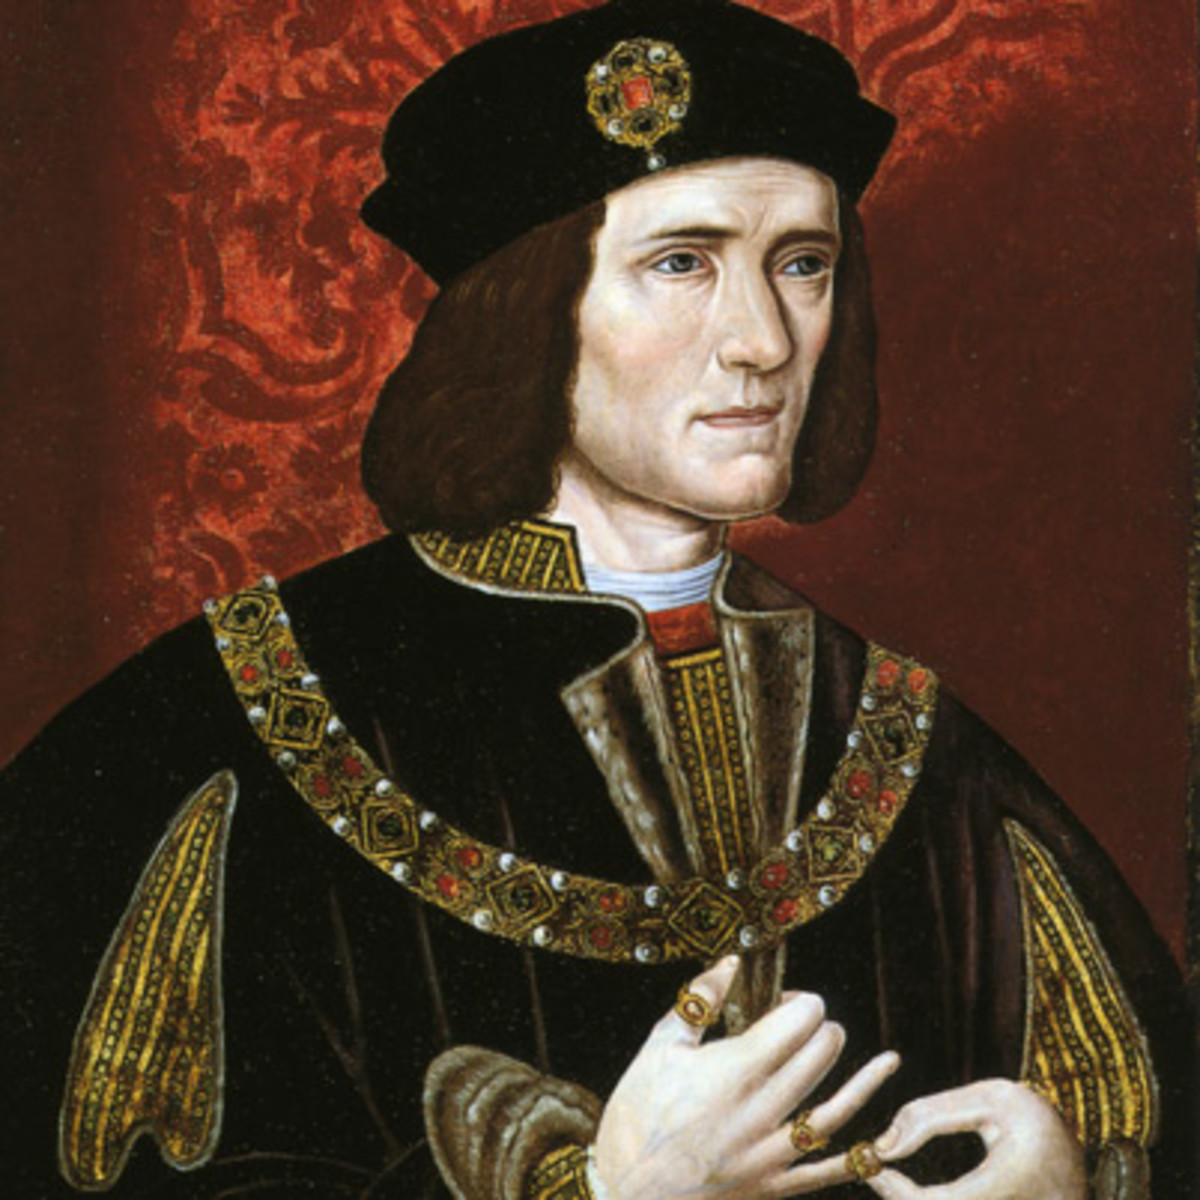 account of the life of king richard iii A clearer historical picture of king richard iii emerges from a new 3-d facial reconstruction and linguistic analysis of his letters.